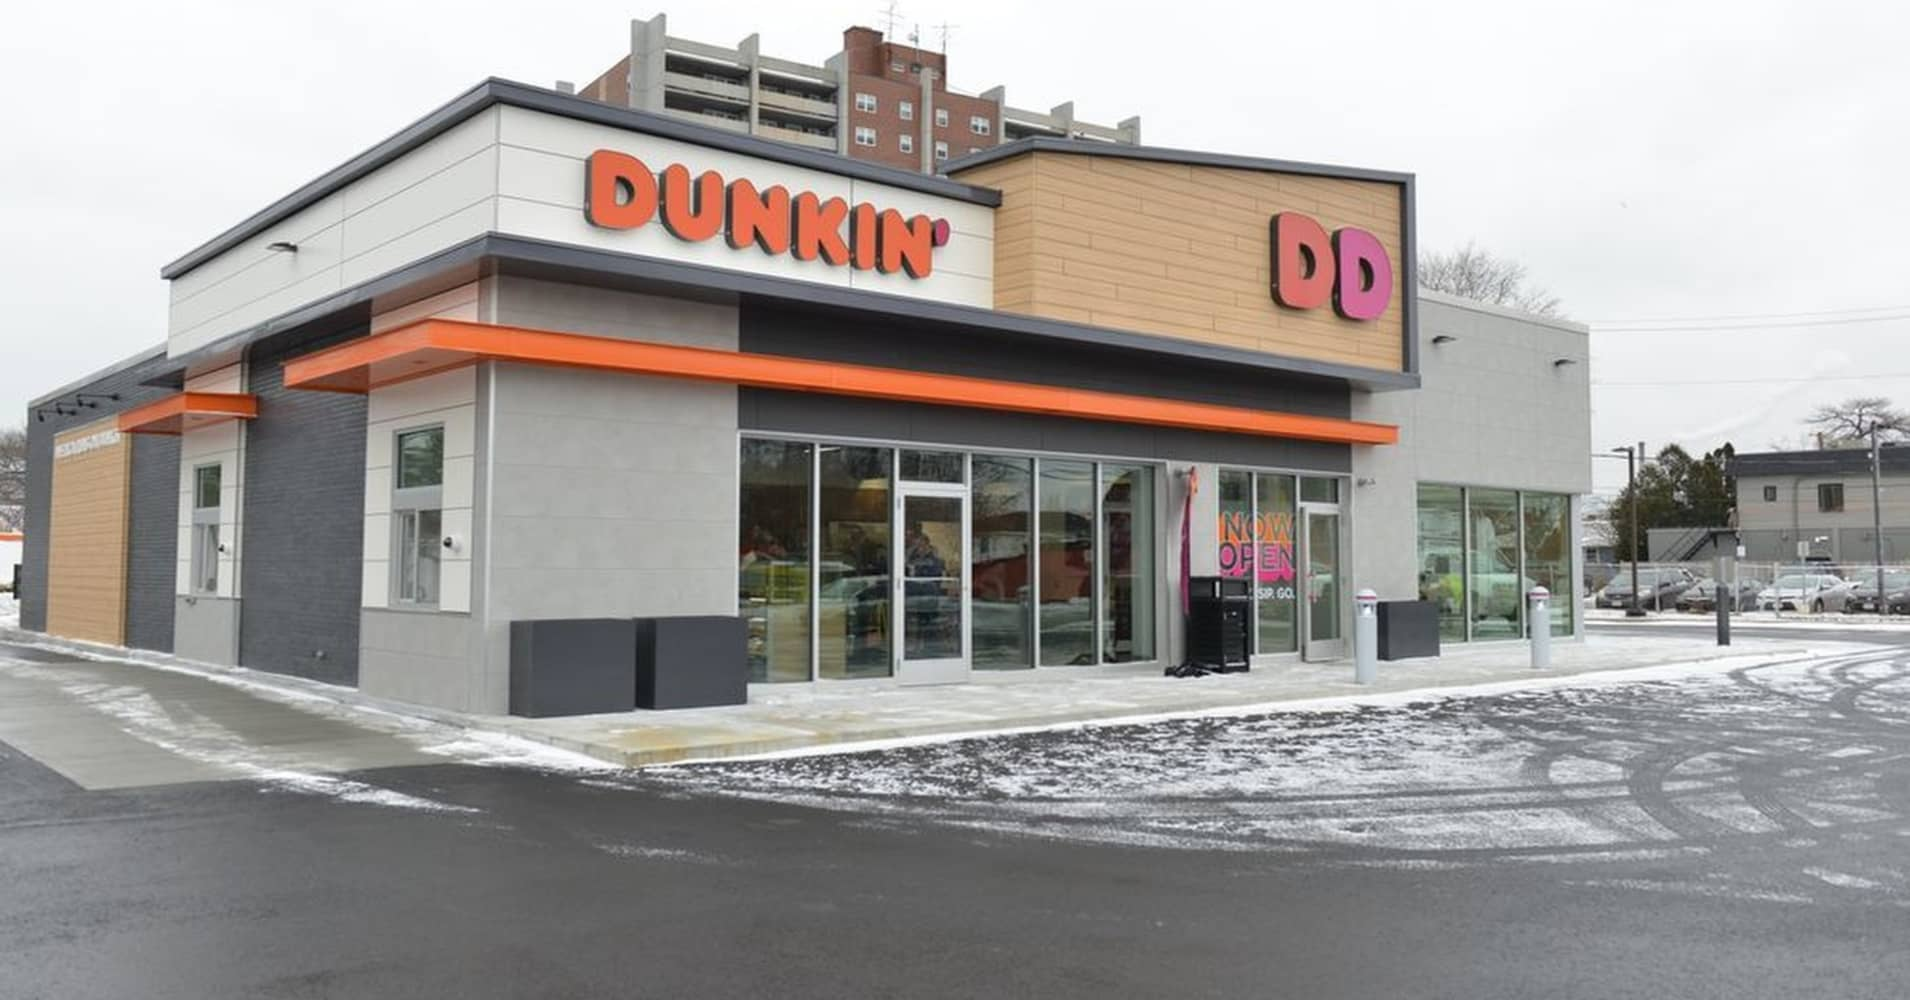 Exterior of Dunkin' Donut's new location in Quincy, Massachusetts.